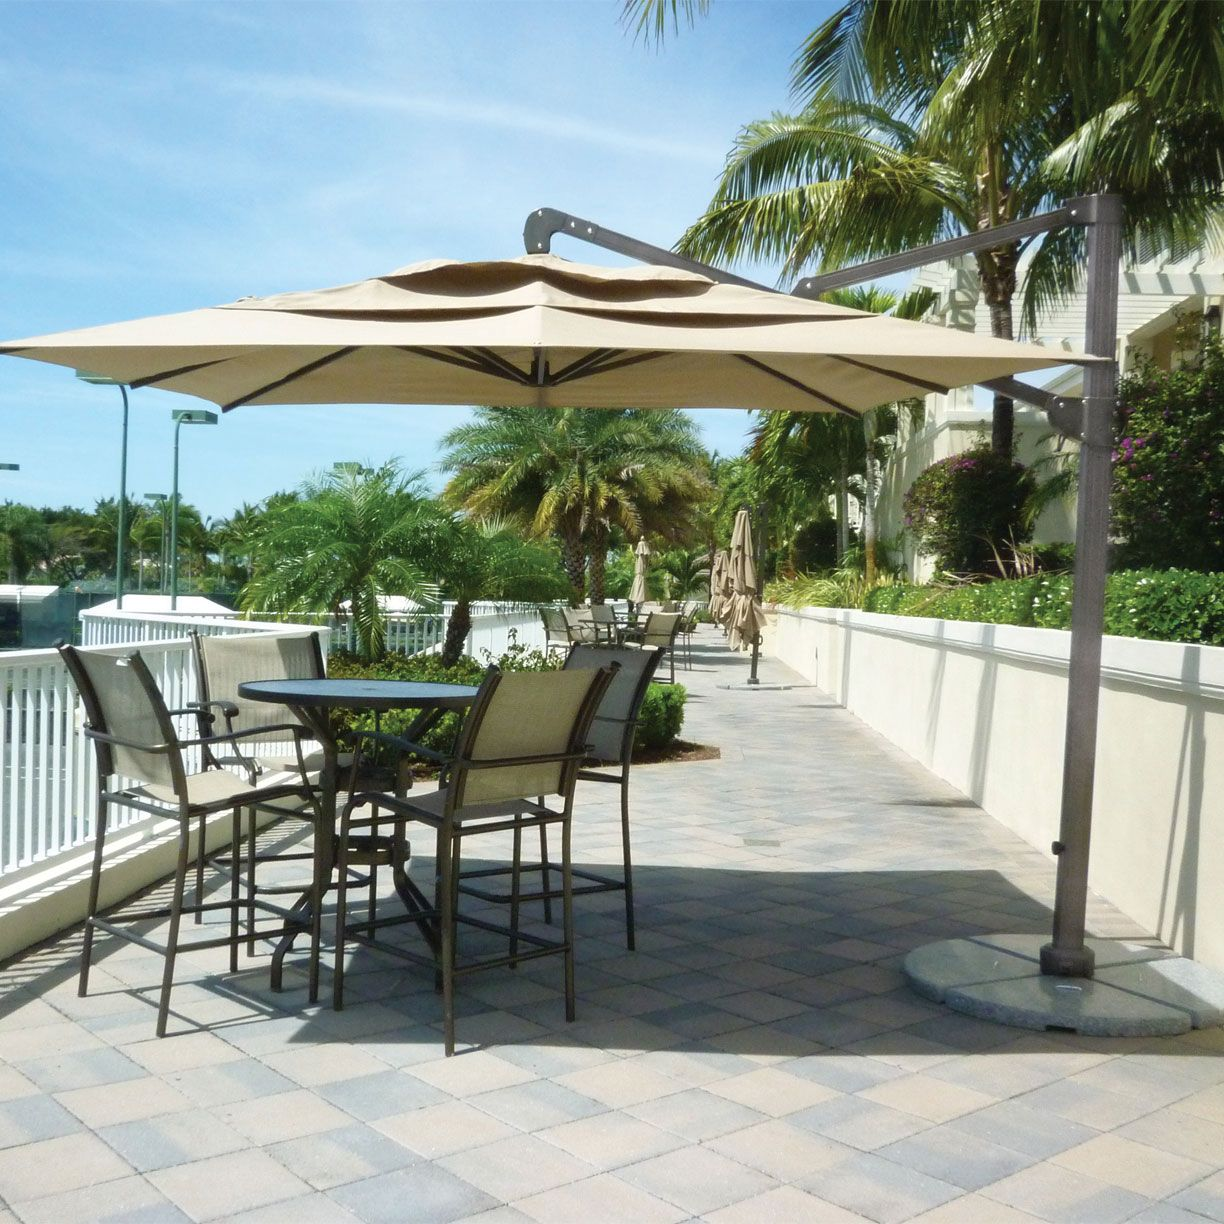 10 Square Cantilever Umbrella With Base By Fiberbuilt Commercial Umbrellas Upbeat Large Freestanding Allows Versatile Shading